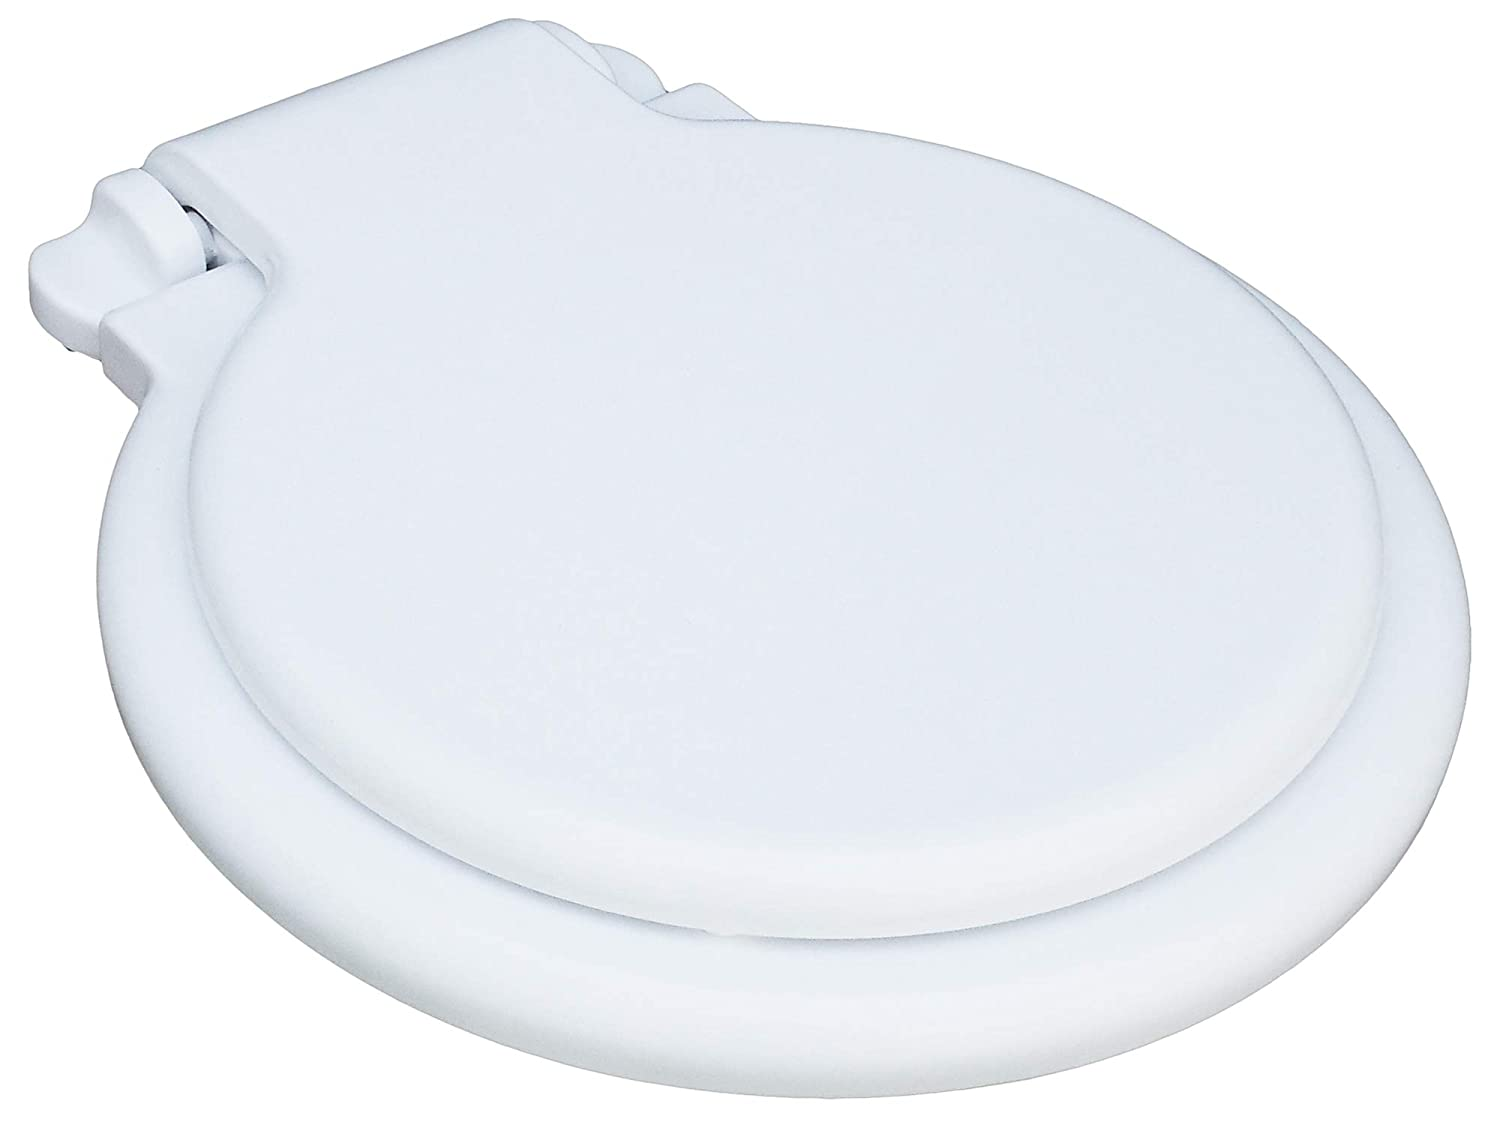 Five Oceans Toilet Seat & Cover FO-1398